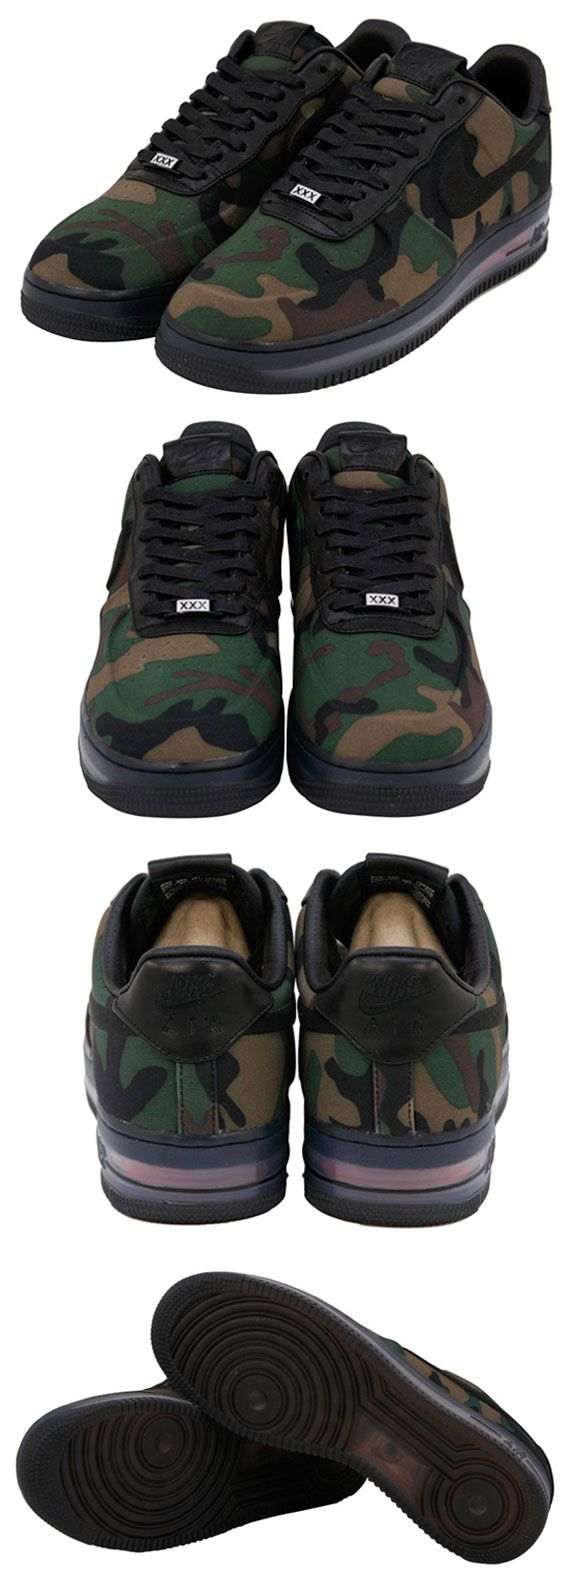 nike-air-force-1-low-max-air-vt-camo-new-images-2